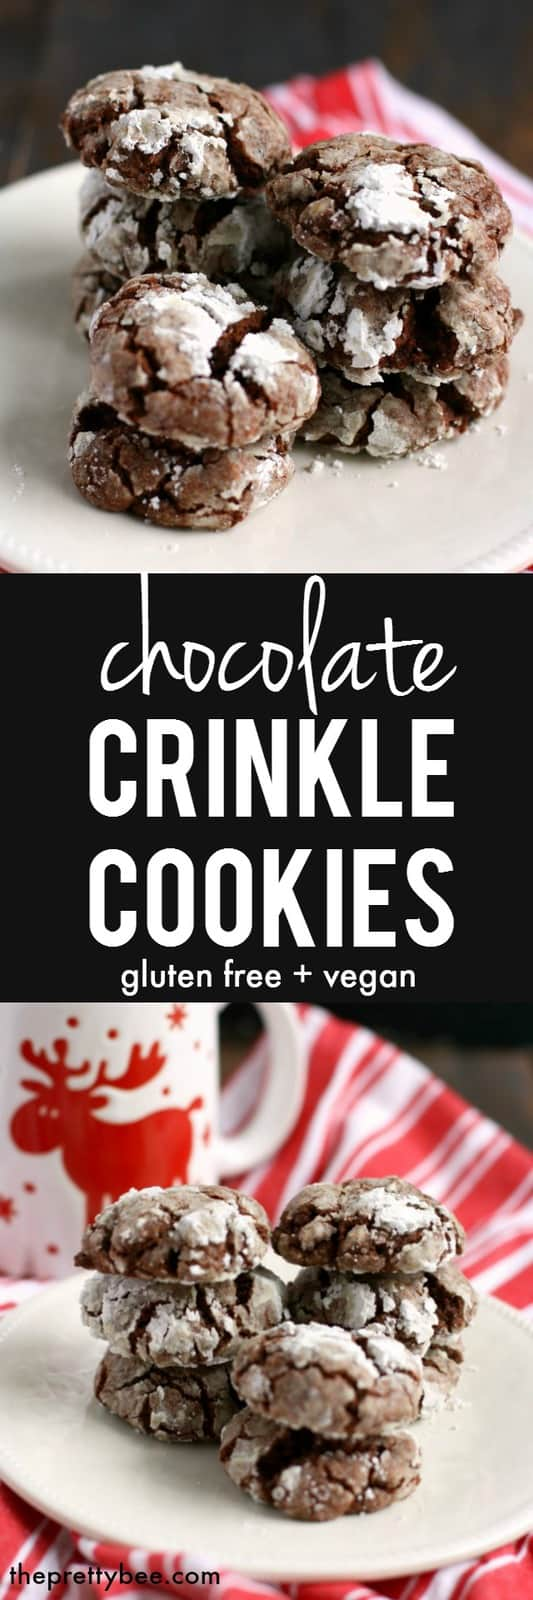 These gluten free and vegan chocolate crinkle cookies absolutely melt in your mouth! A perfect cookie for the holiday season! #glutenfree #vegan #dairyfree #nutfree